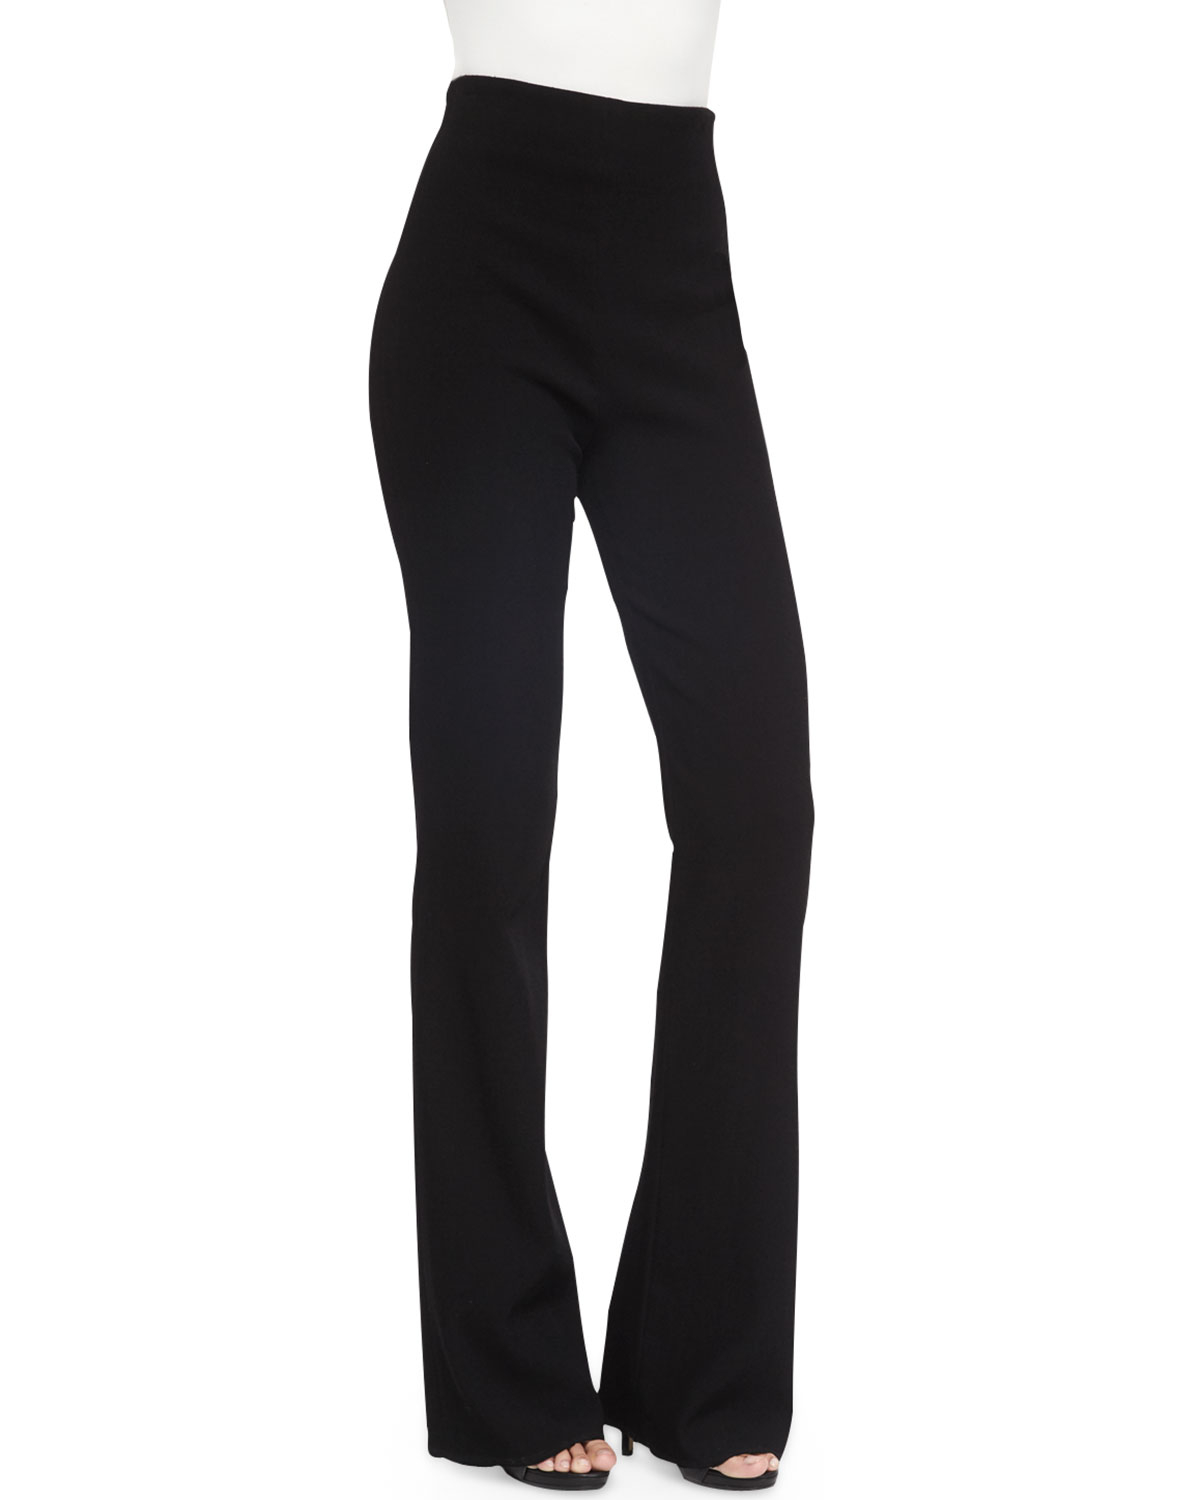 Donna karan High-waist Straight-leg Pants in Black | Lyst